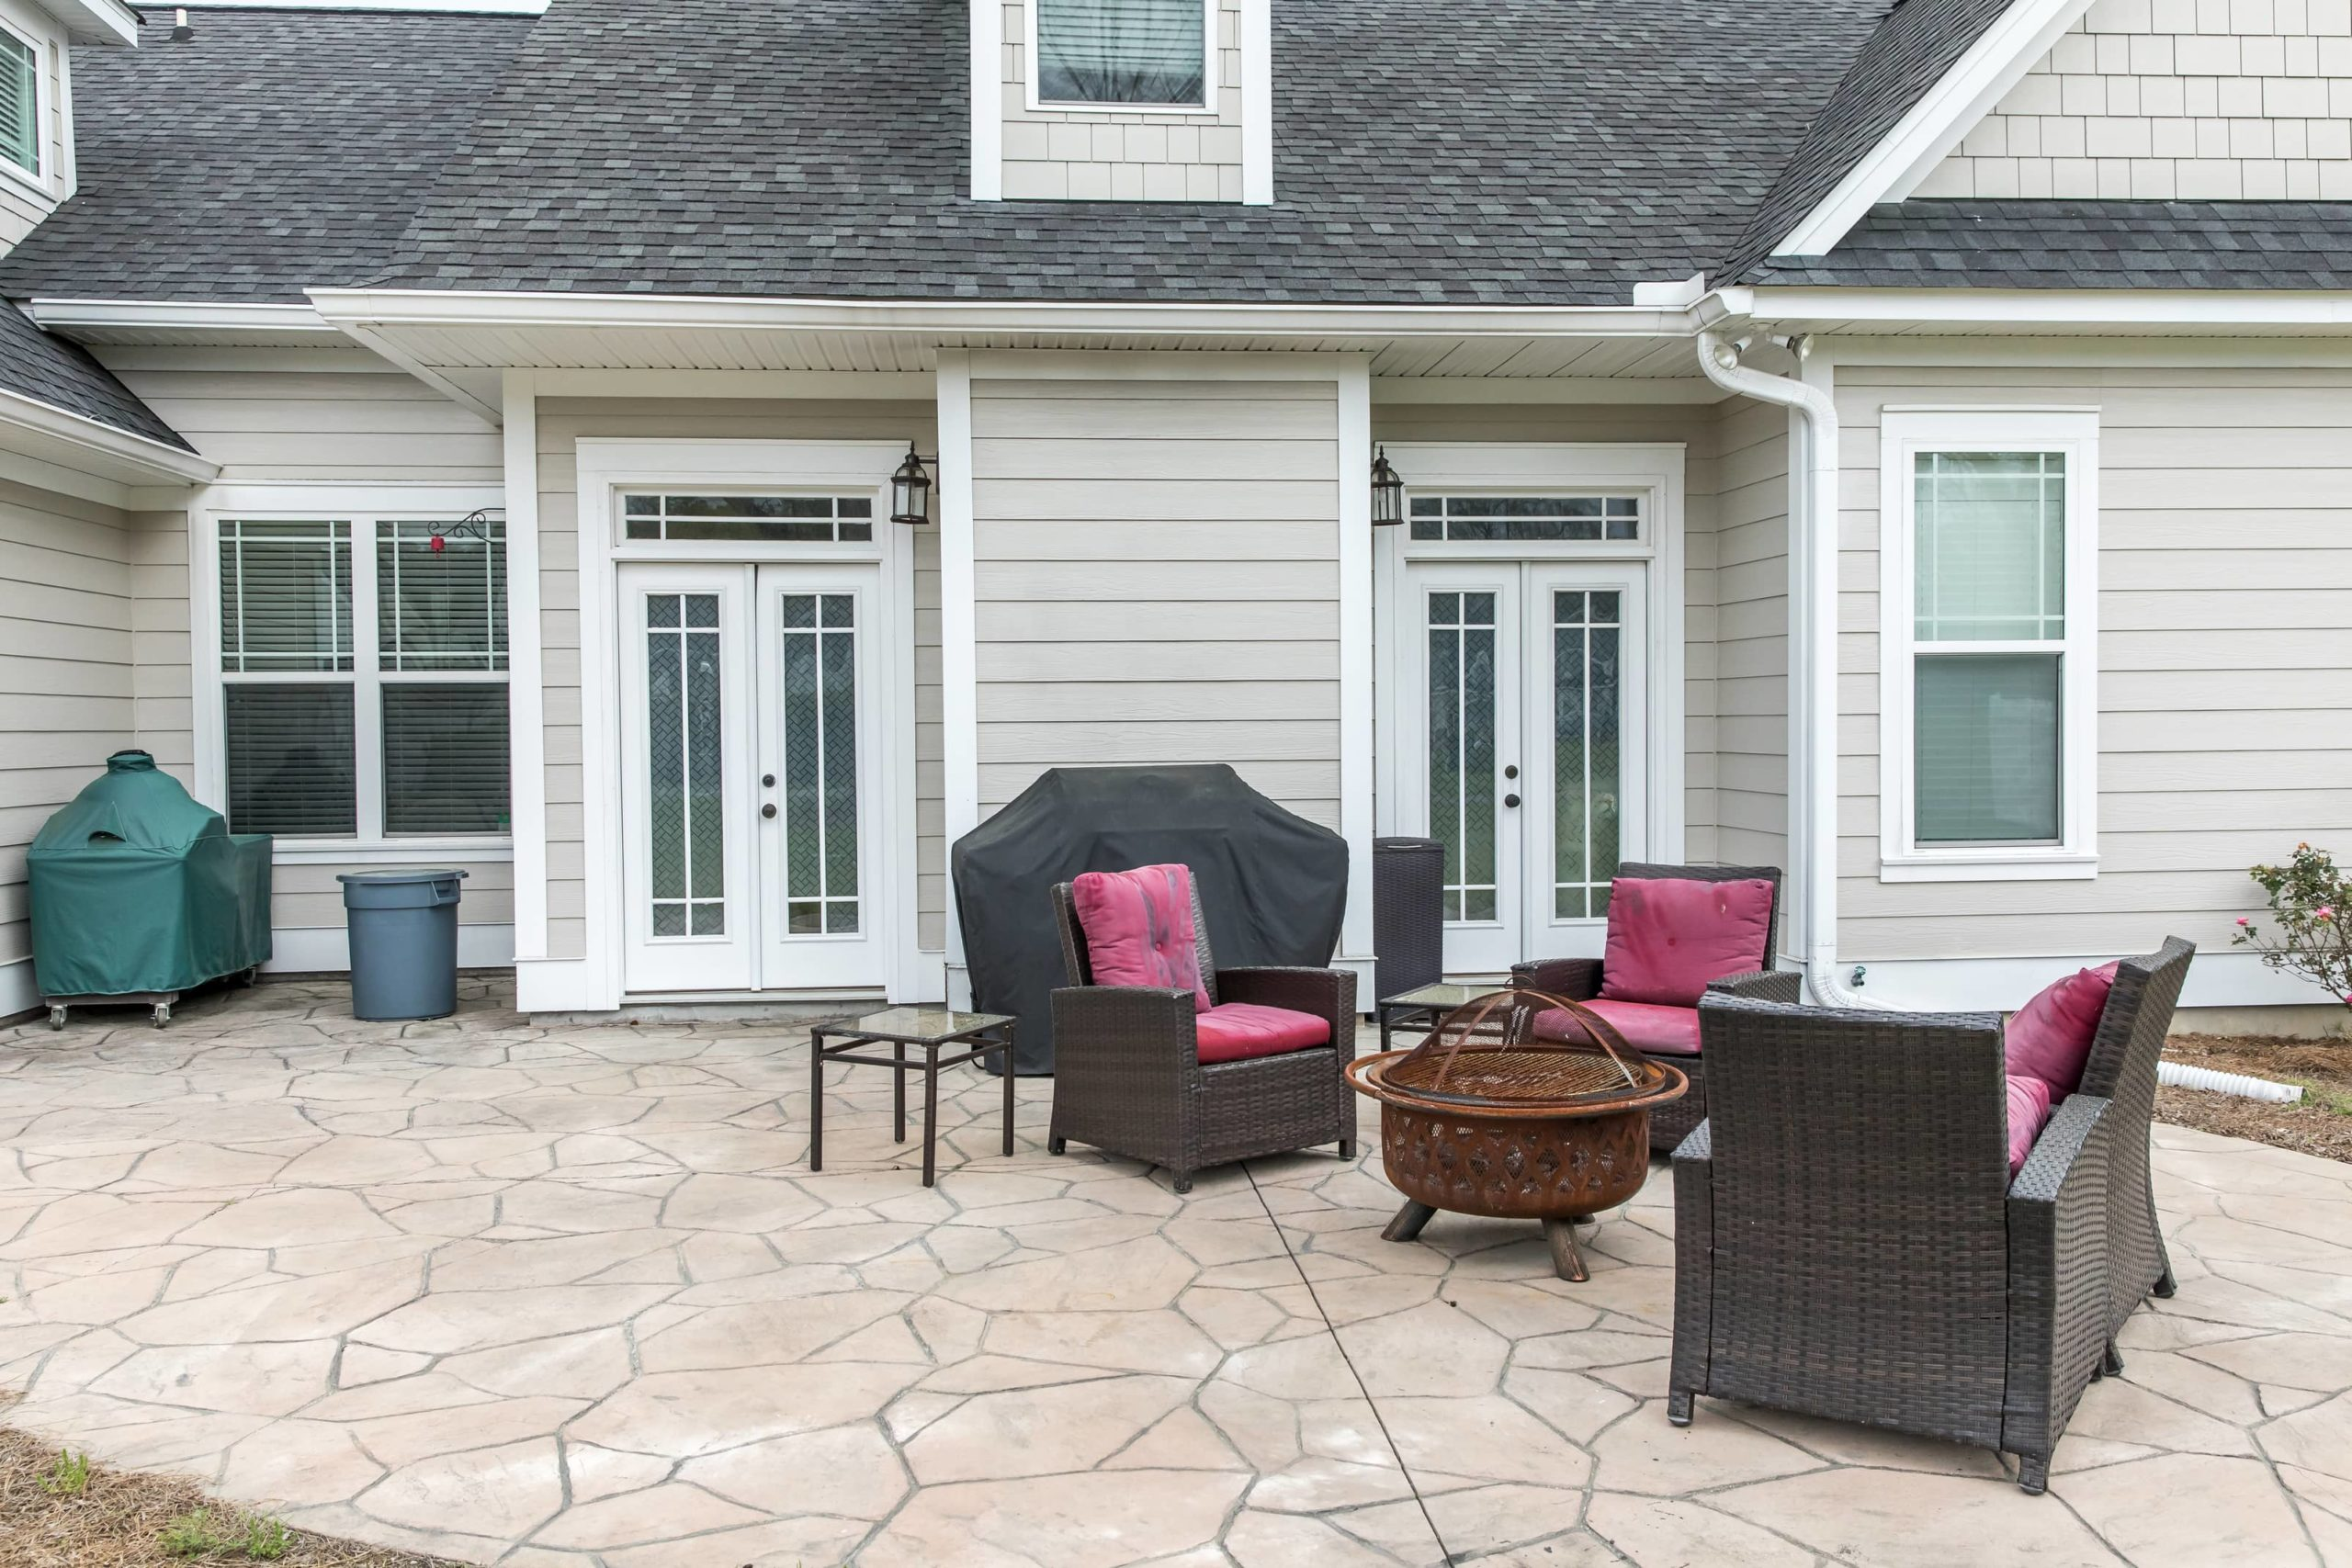 This is an image of a cozy concrete patio with sofas and firepit.